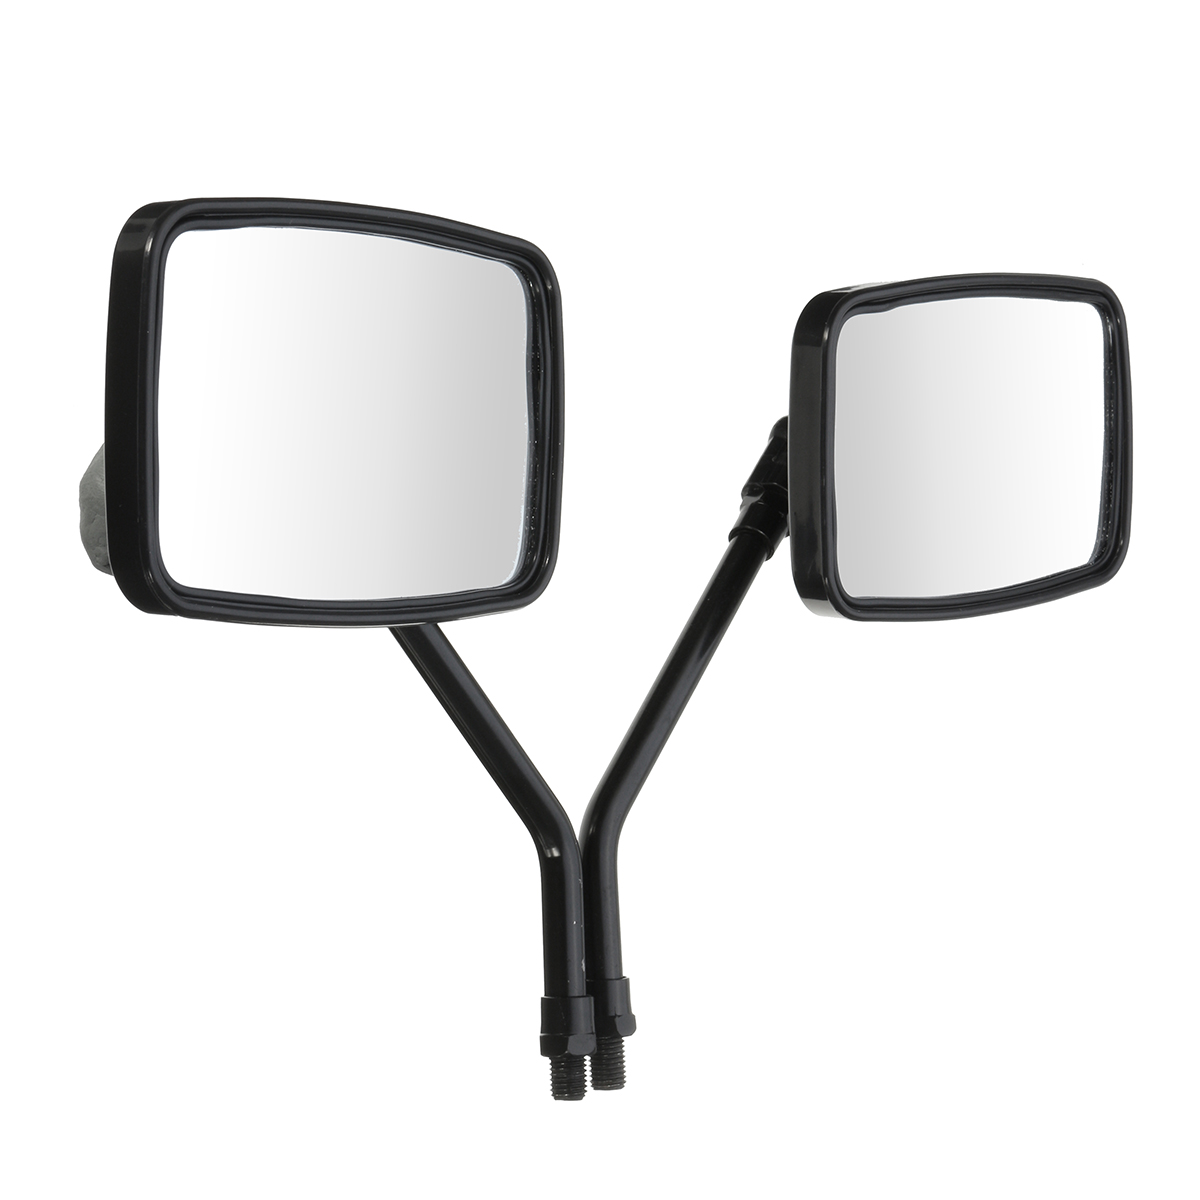 Pair Black 10MM Thread Black Rectangle Rearview Side Mirrors For Motorcycle Scooter ATV